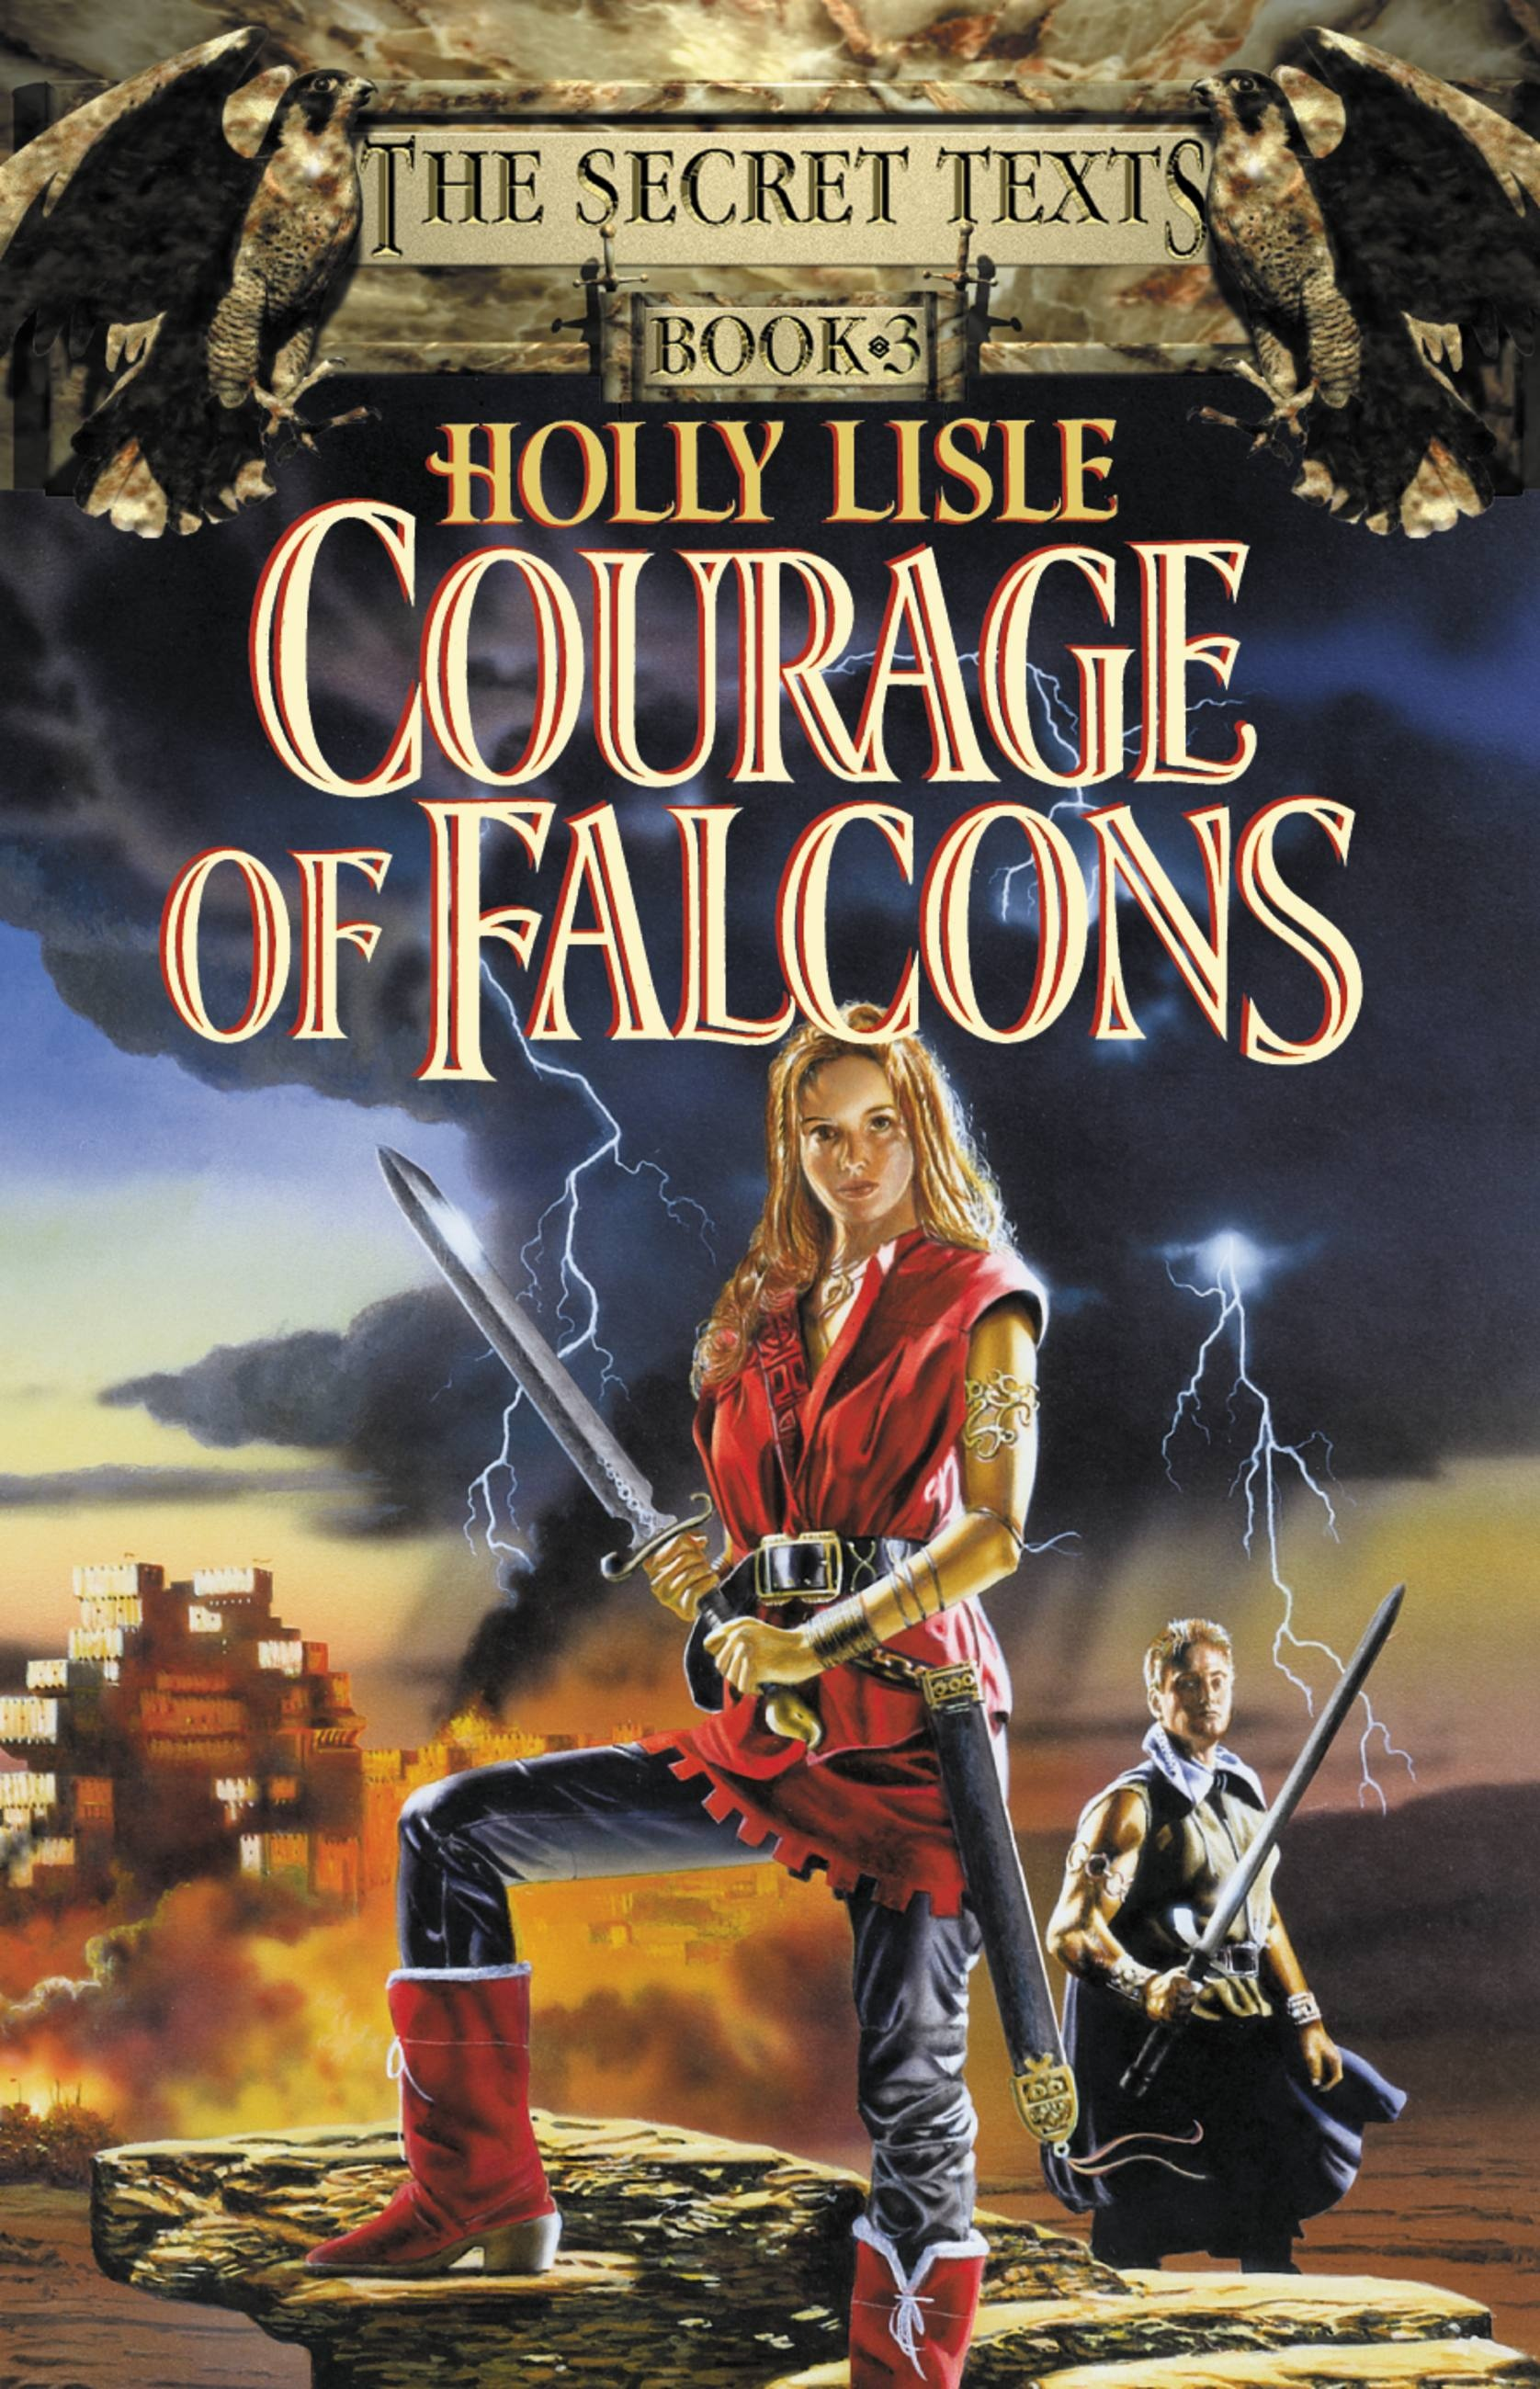 Courage of Falcons